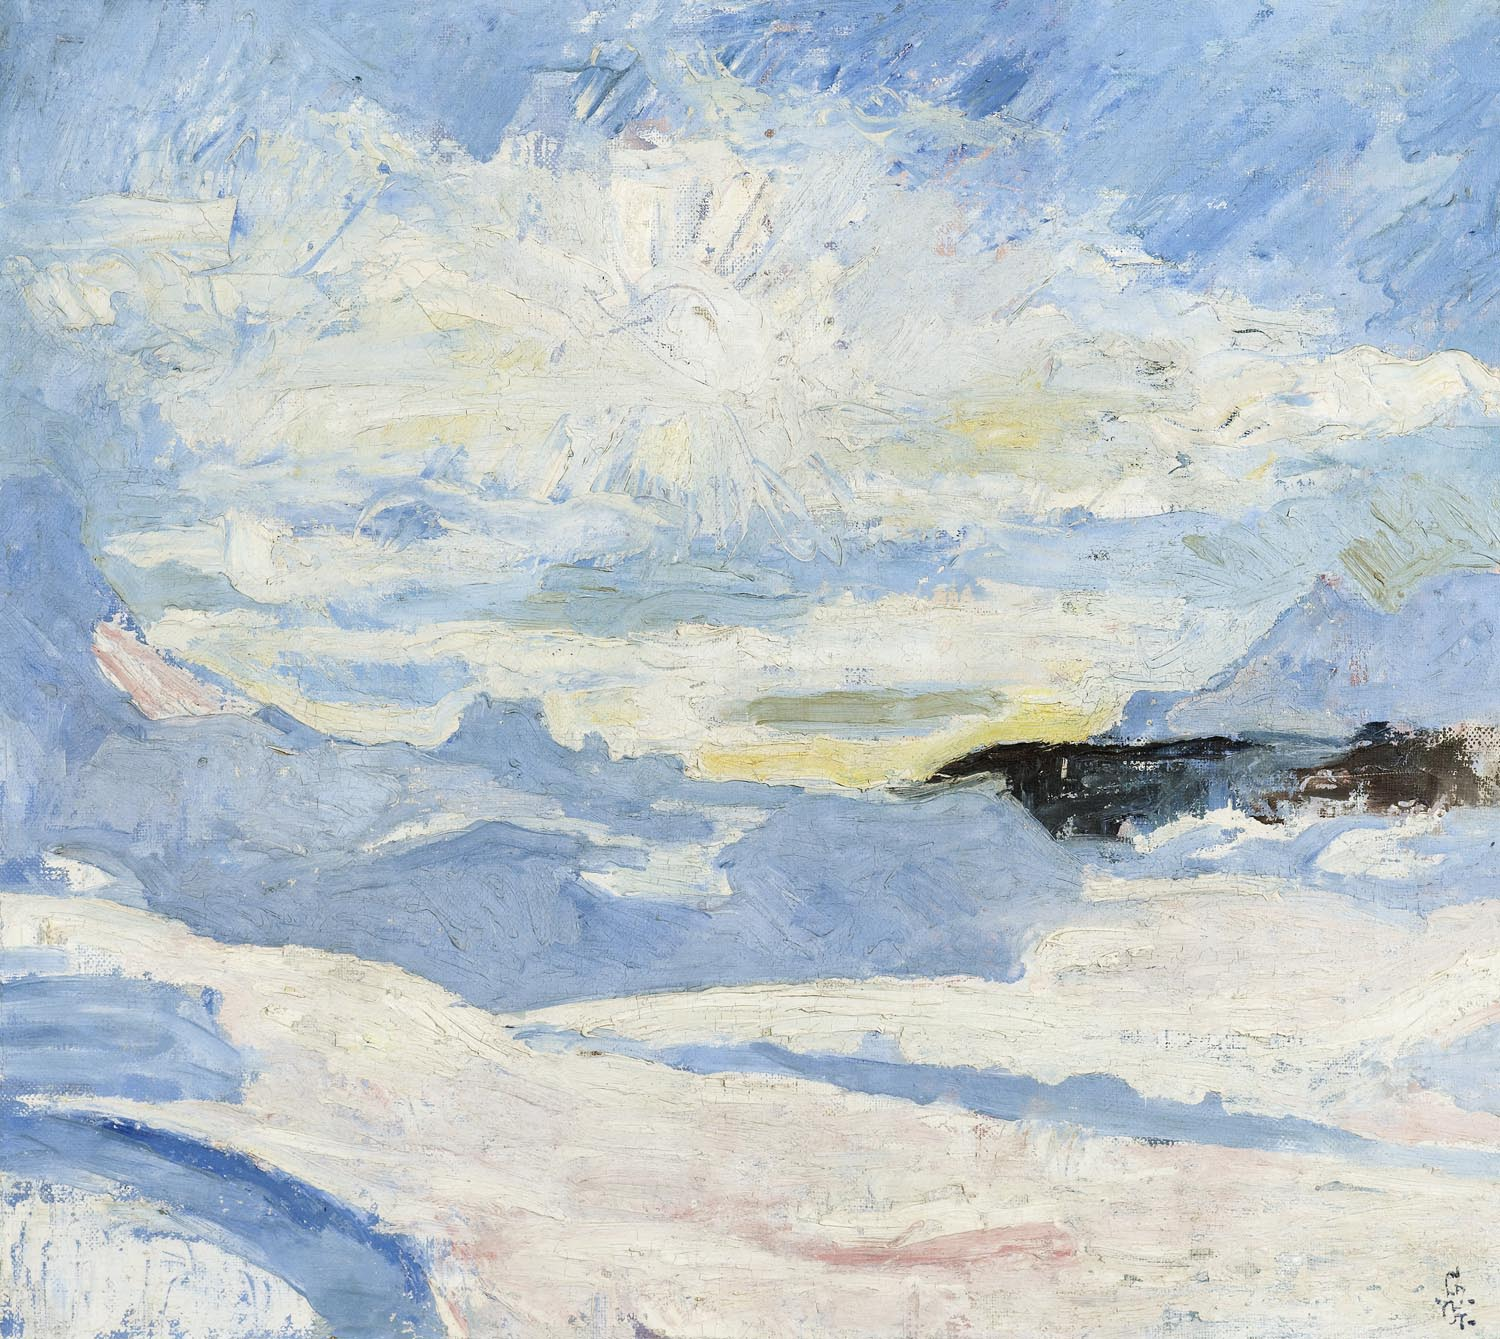 Peintre Giacometti Winter Landscape Near Maloja Painting Giovanni